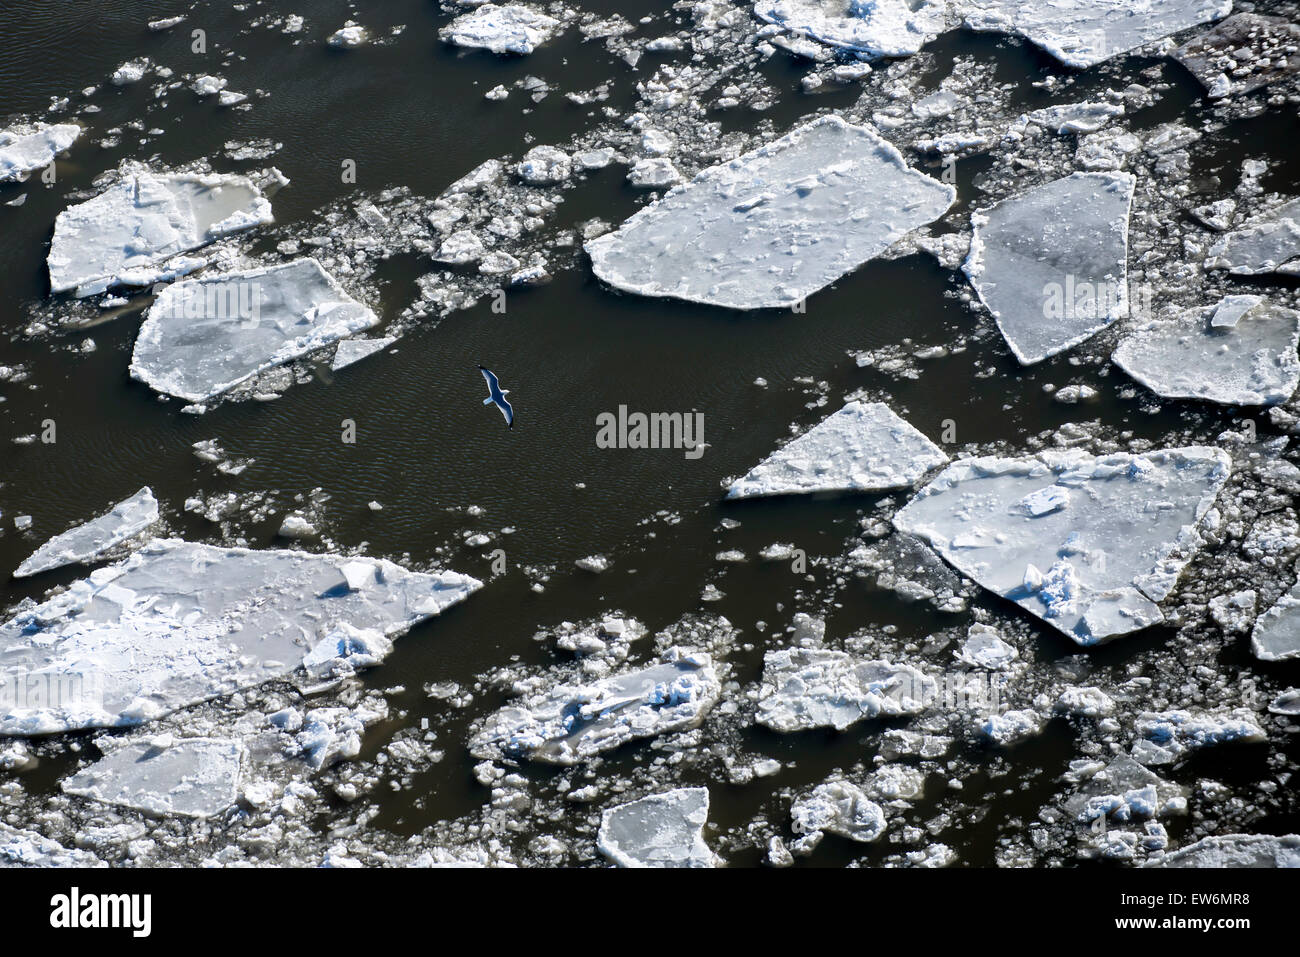 Aerial view of a bird  flying above ice floes on a frozen river - Stock Image